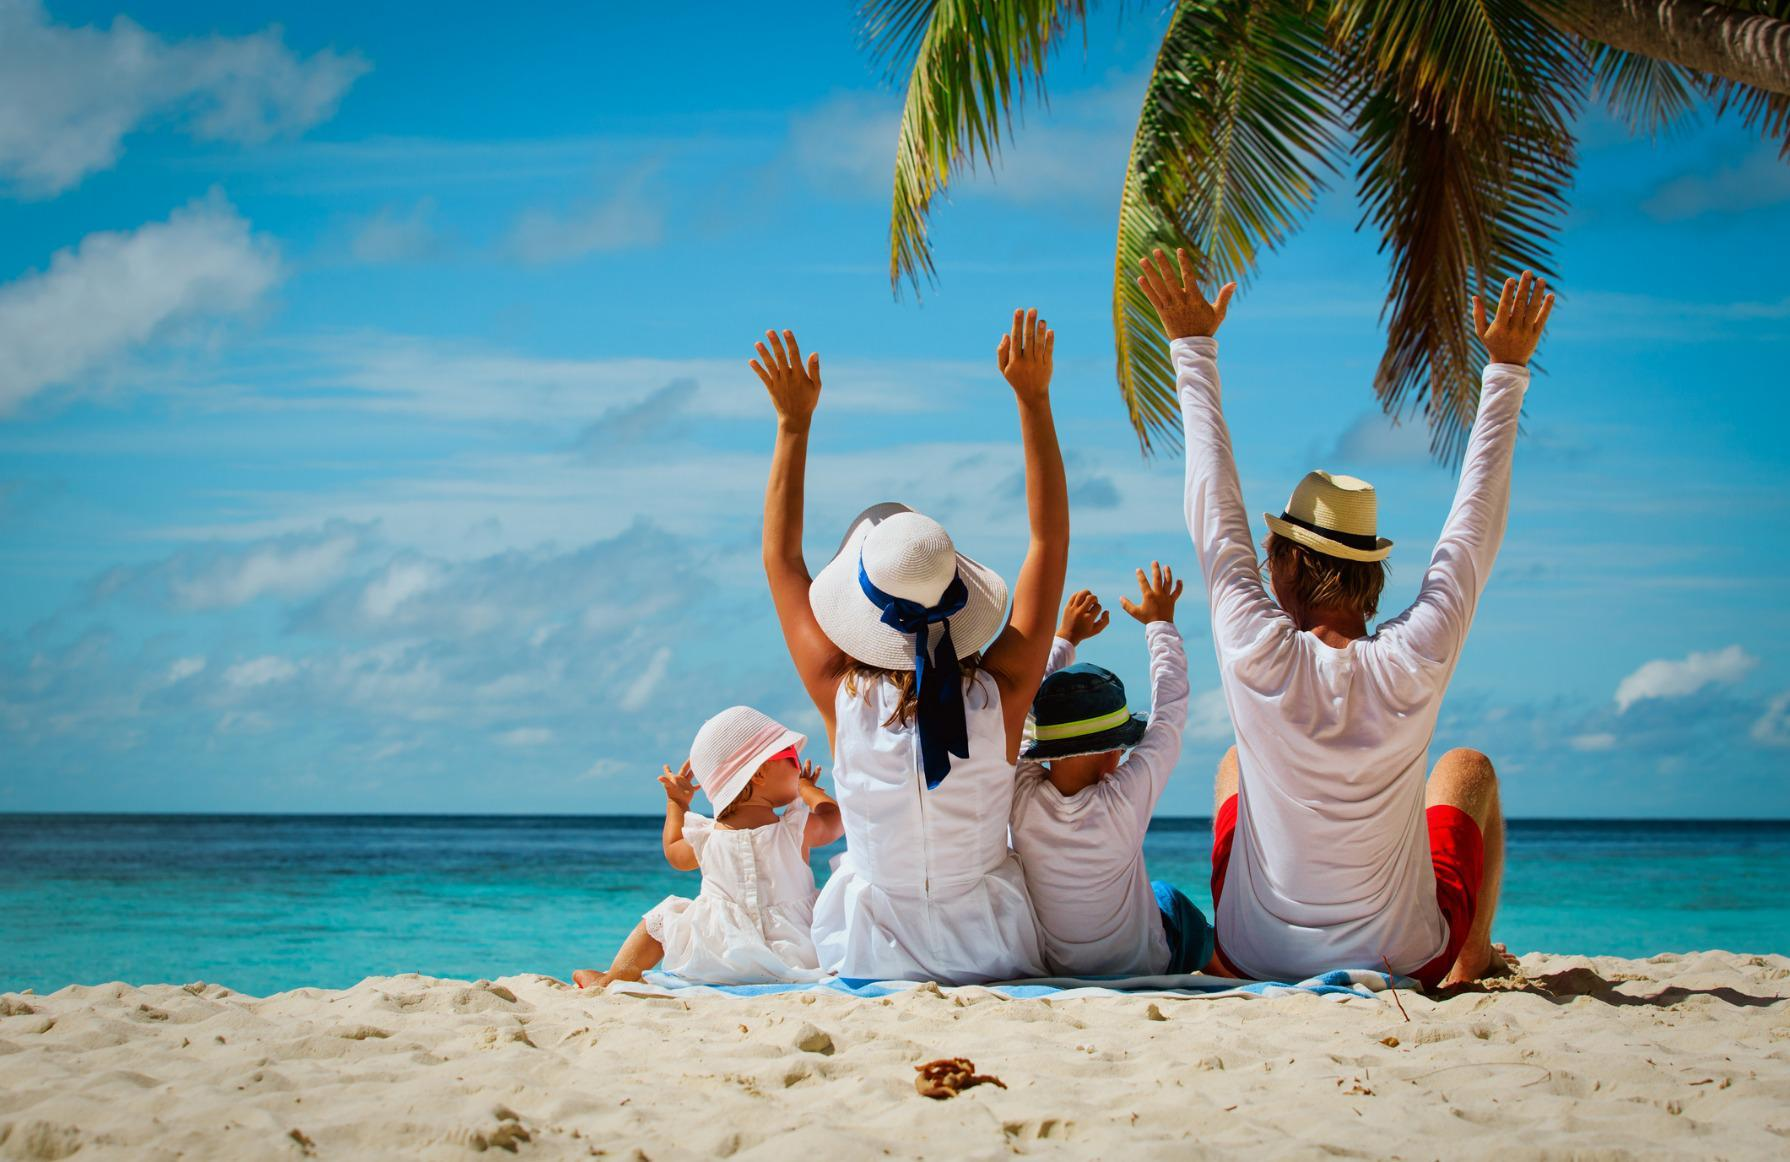 happy-family-with-two-kids-hands-up-on-beach-picture-id677652068_0